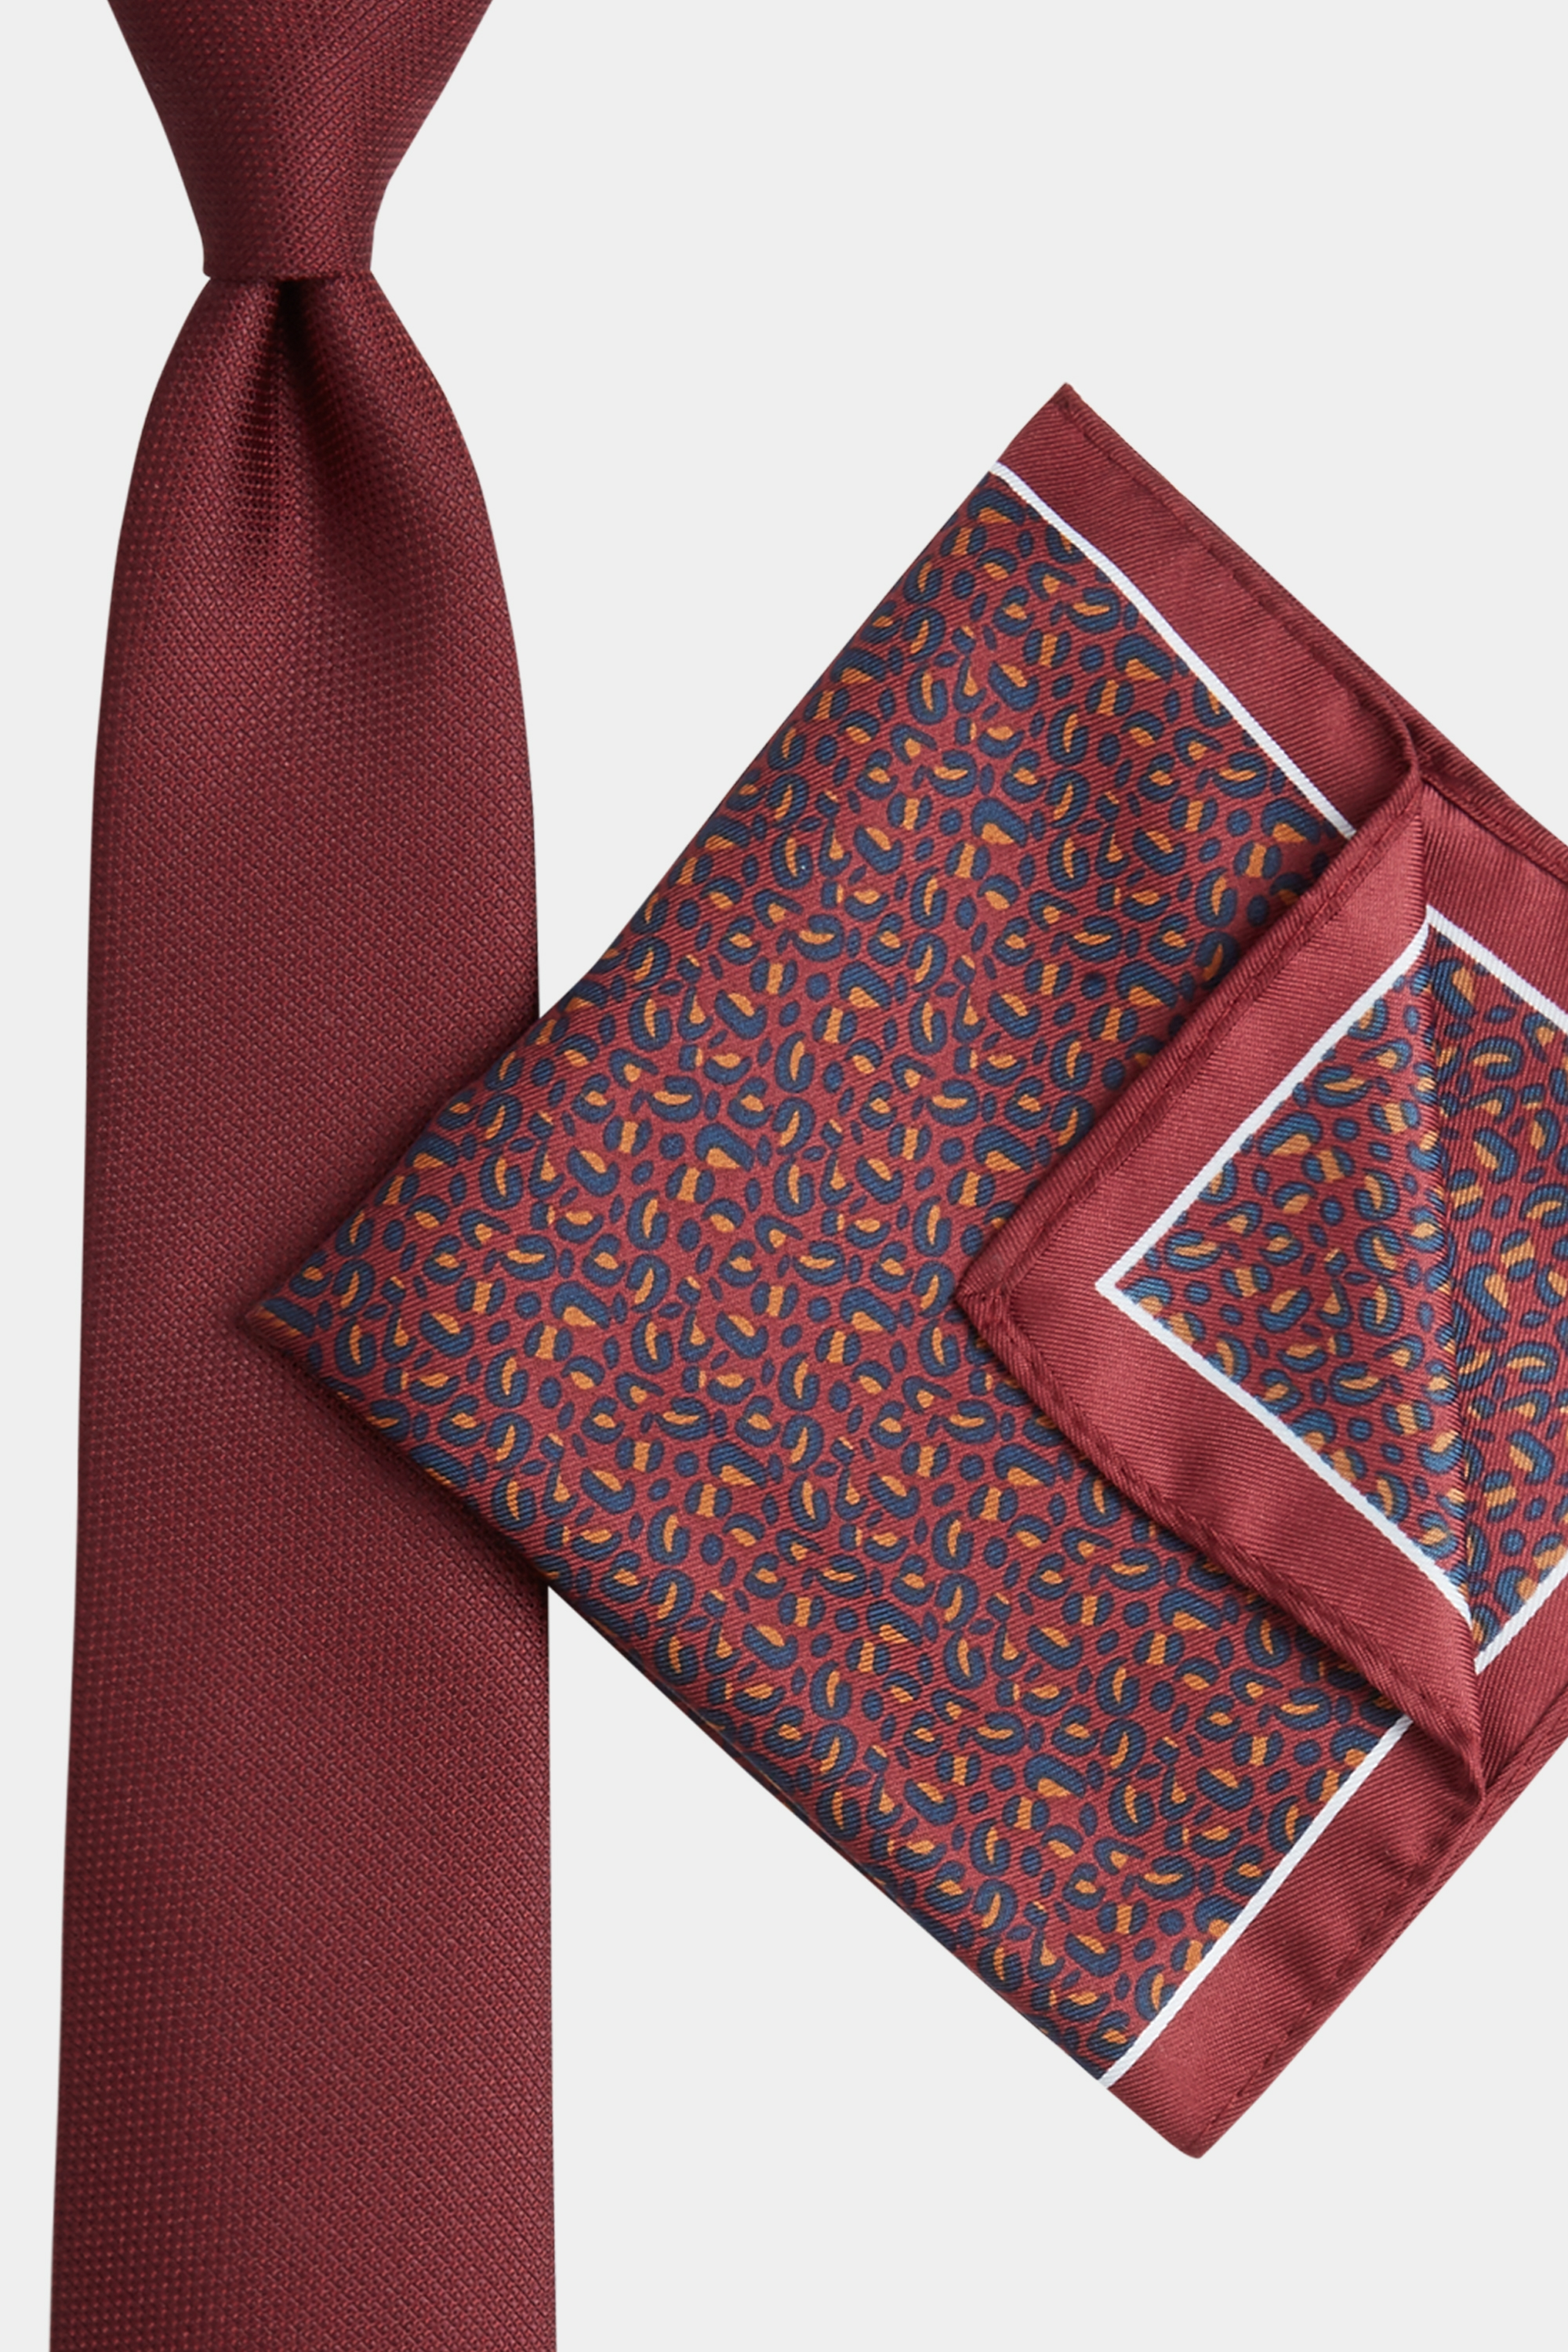 Moss Bros Moss London Wine Animal Print Tie & Pocket Square Gift Set